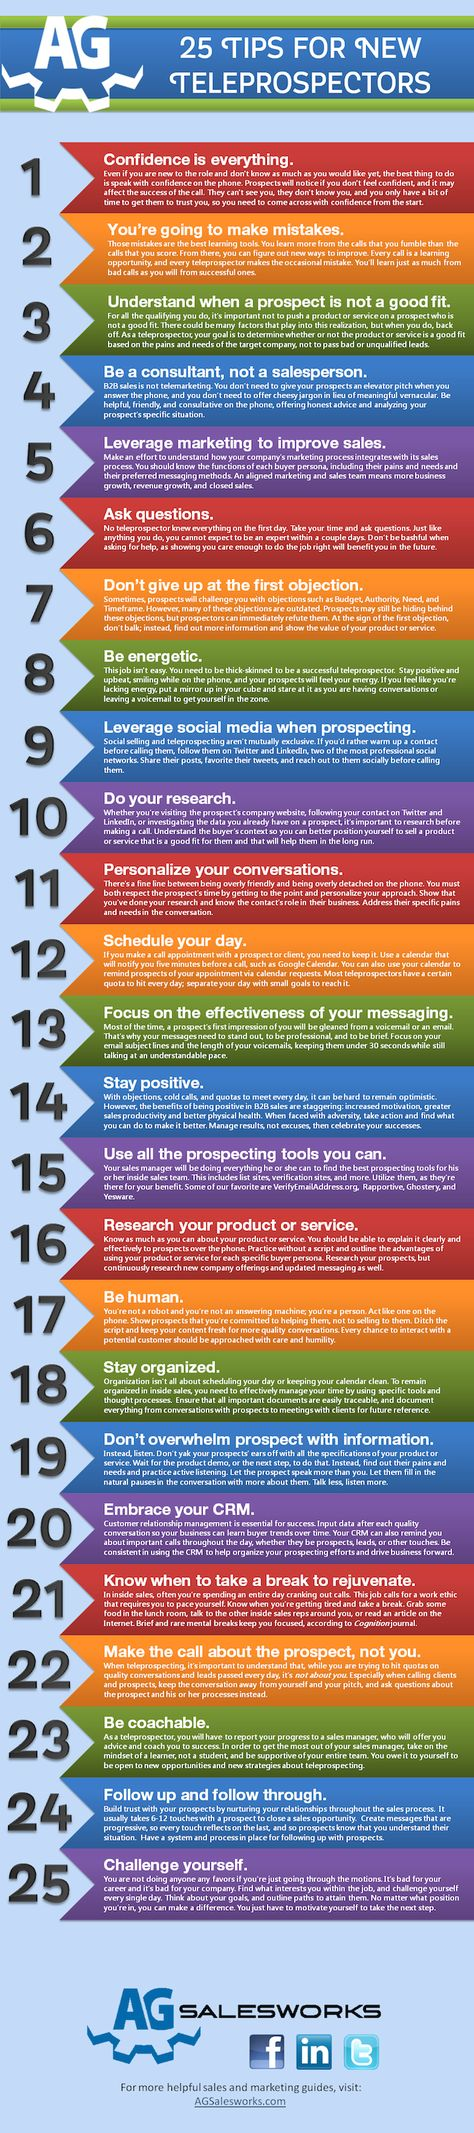 25 Phone Prospecting Tips to Crush Your Next Call [Infographic]